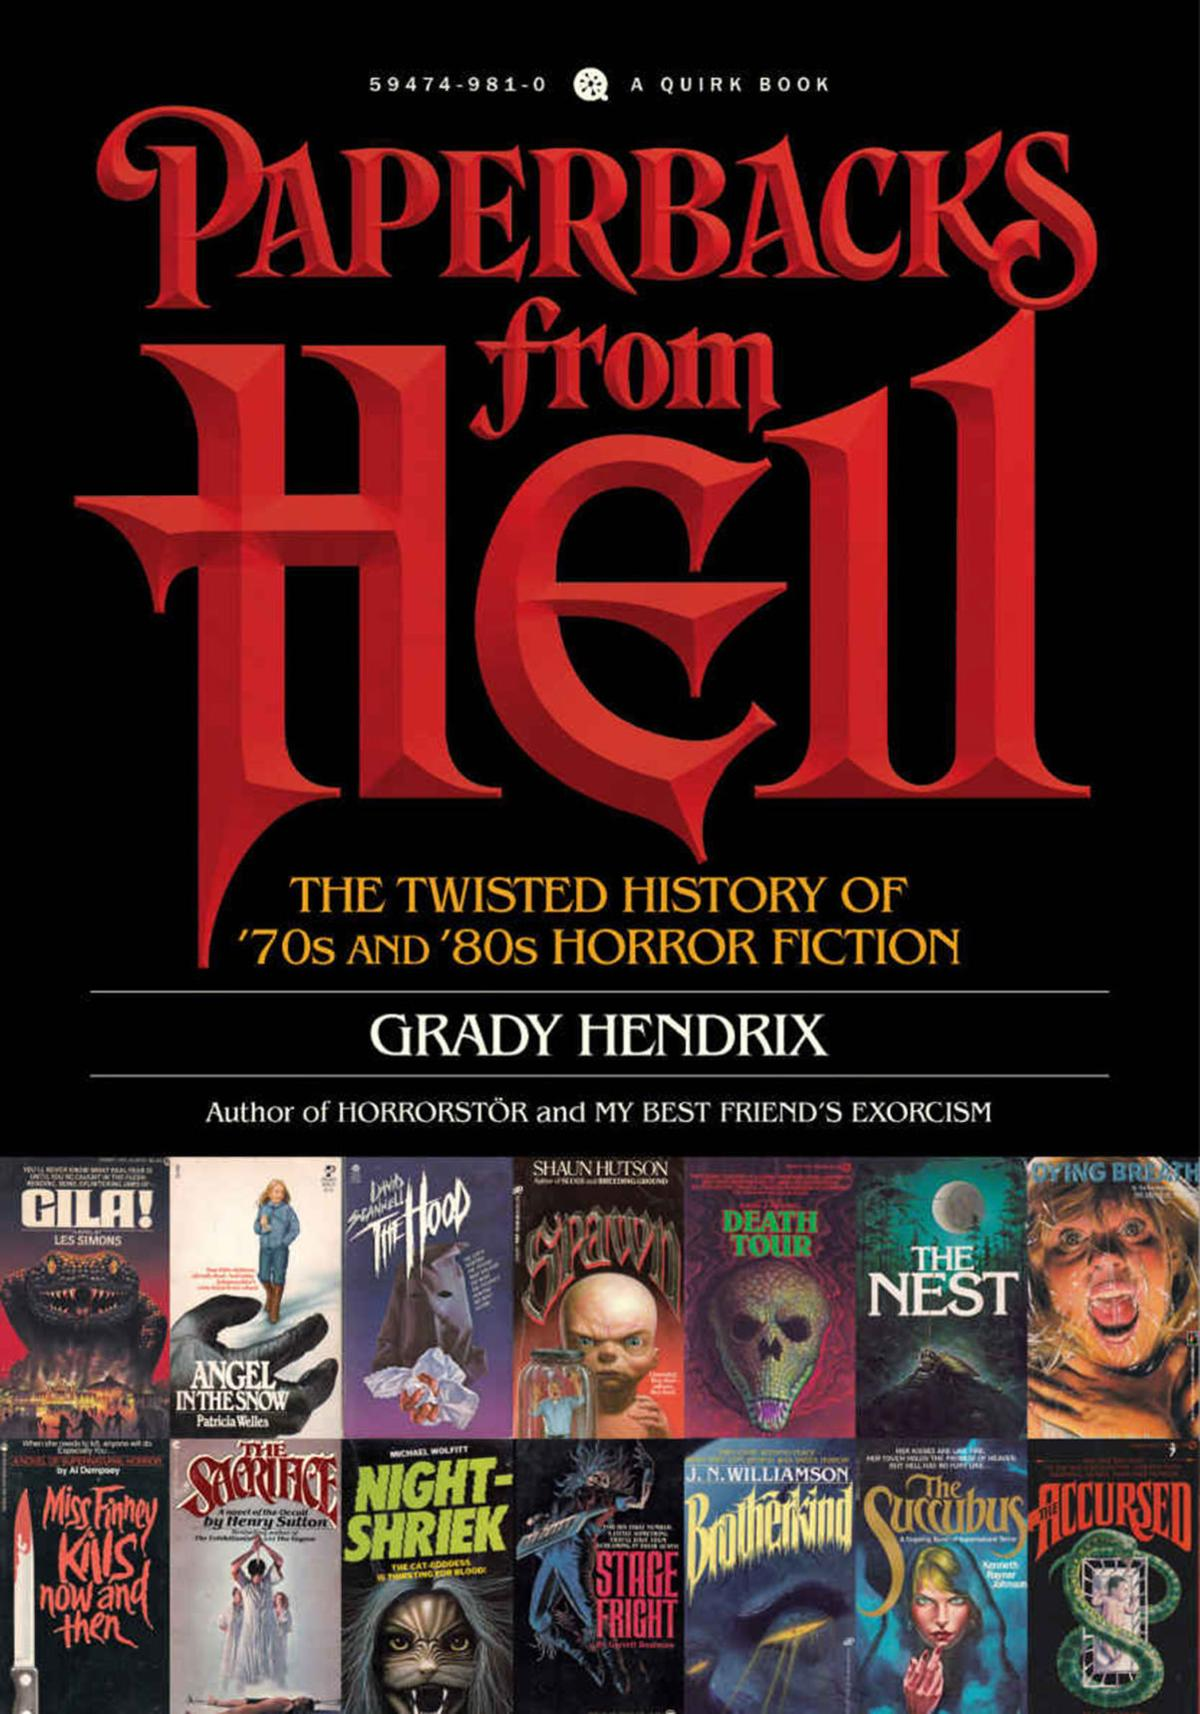 BOOKS BOOK-PAPERBAKCS-HELL-REVIEW LA